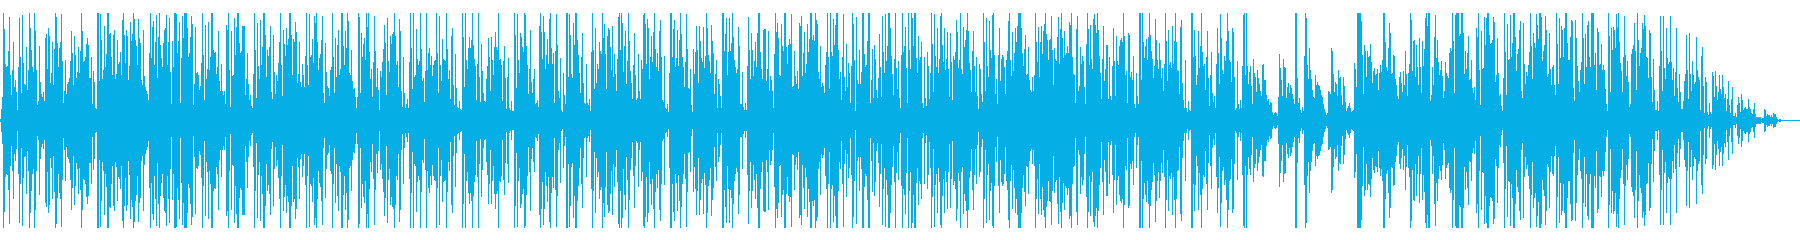 Fashionable and cool piano jazz's reproduced waveform